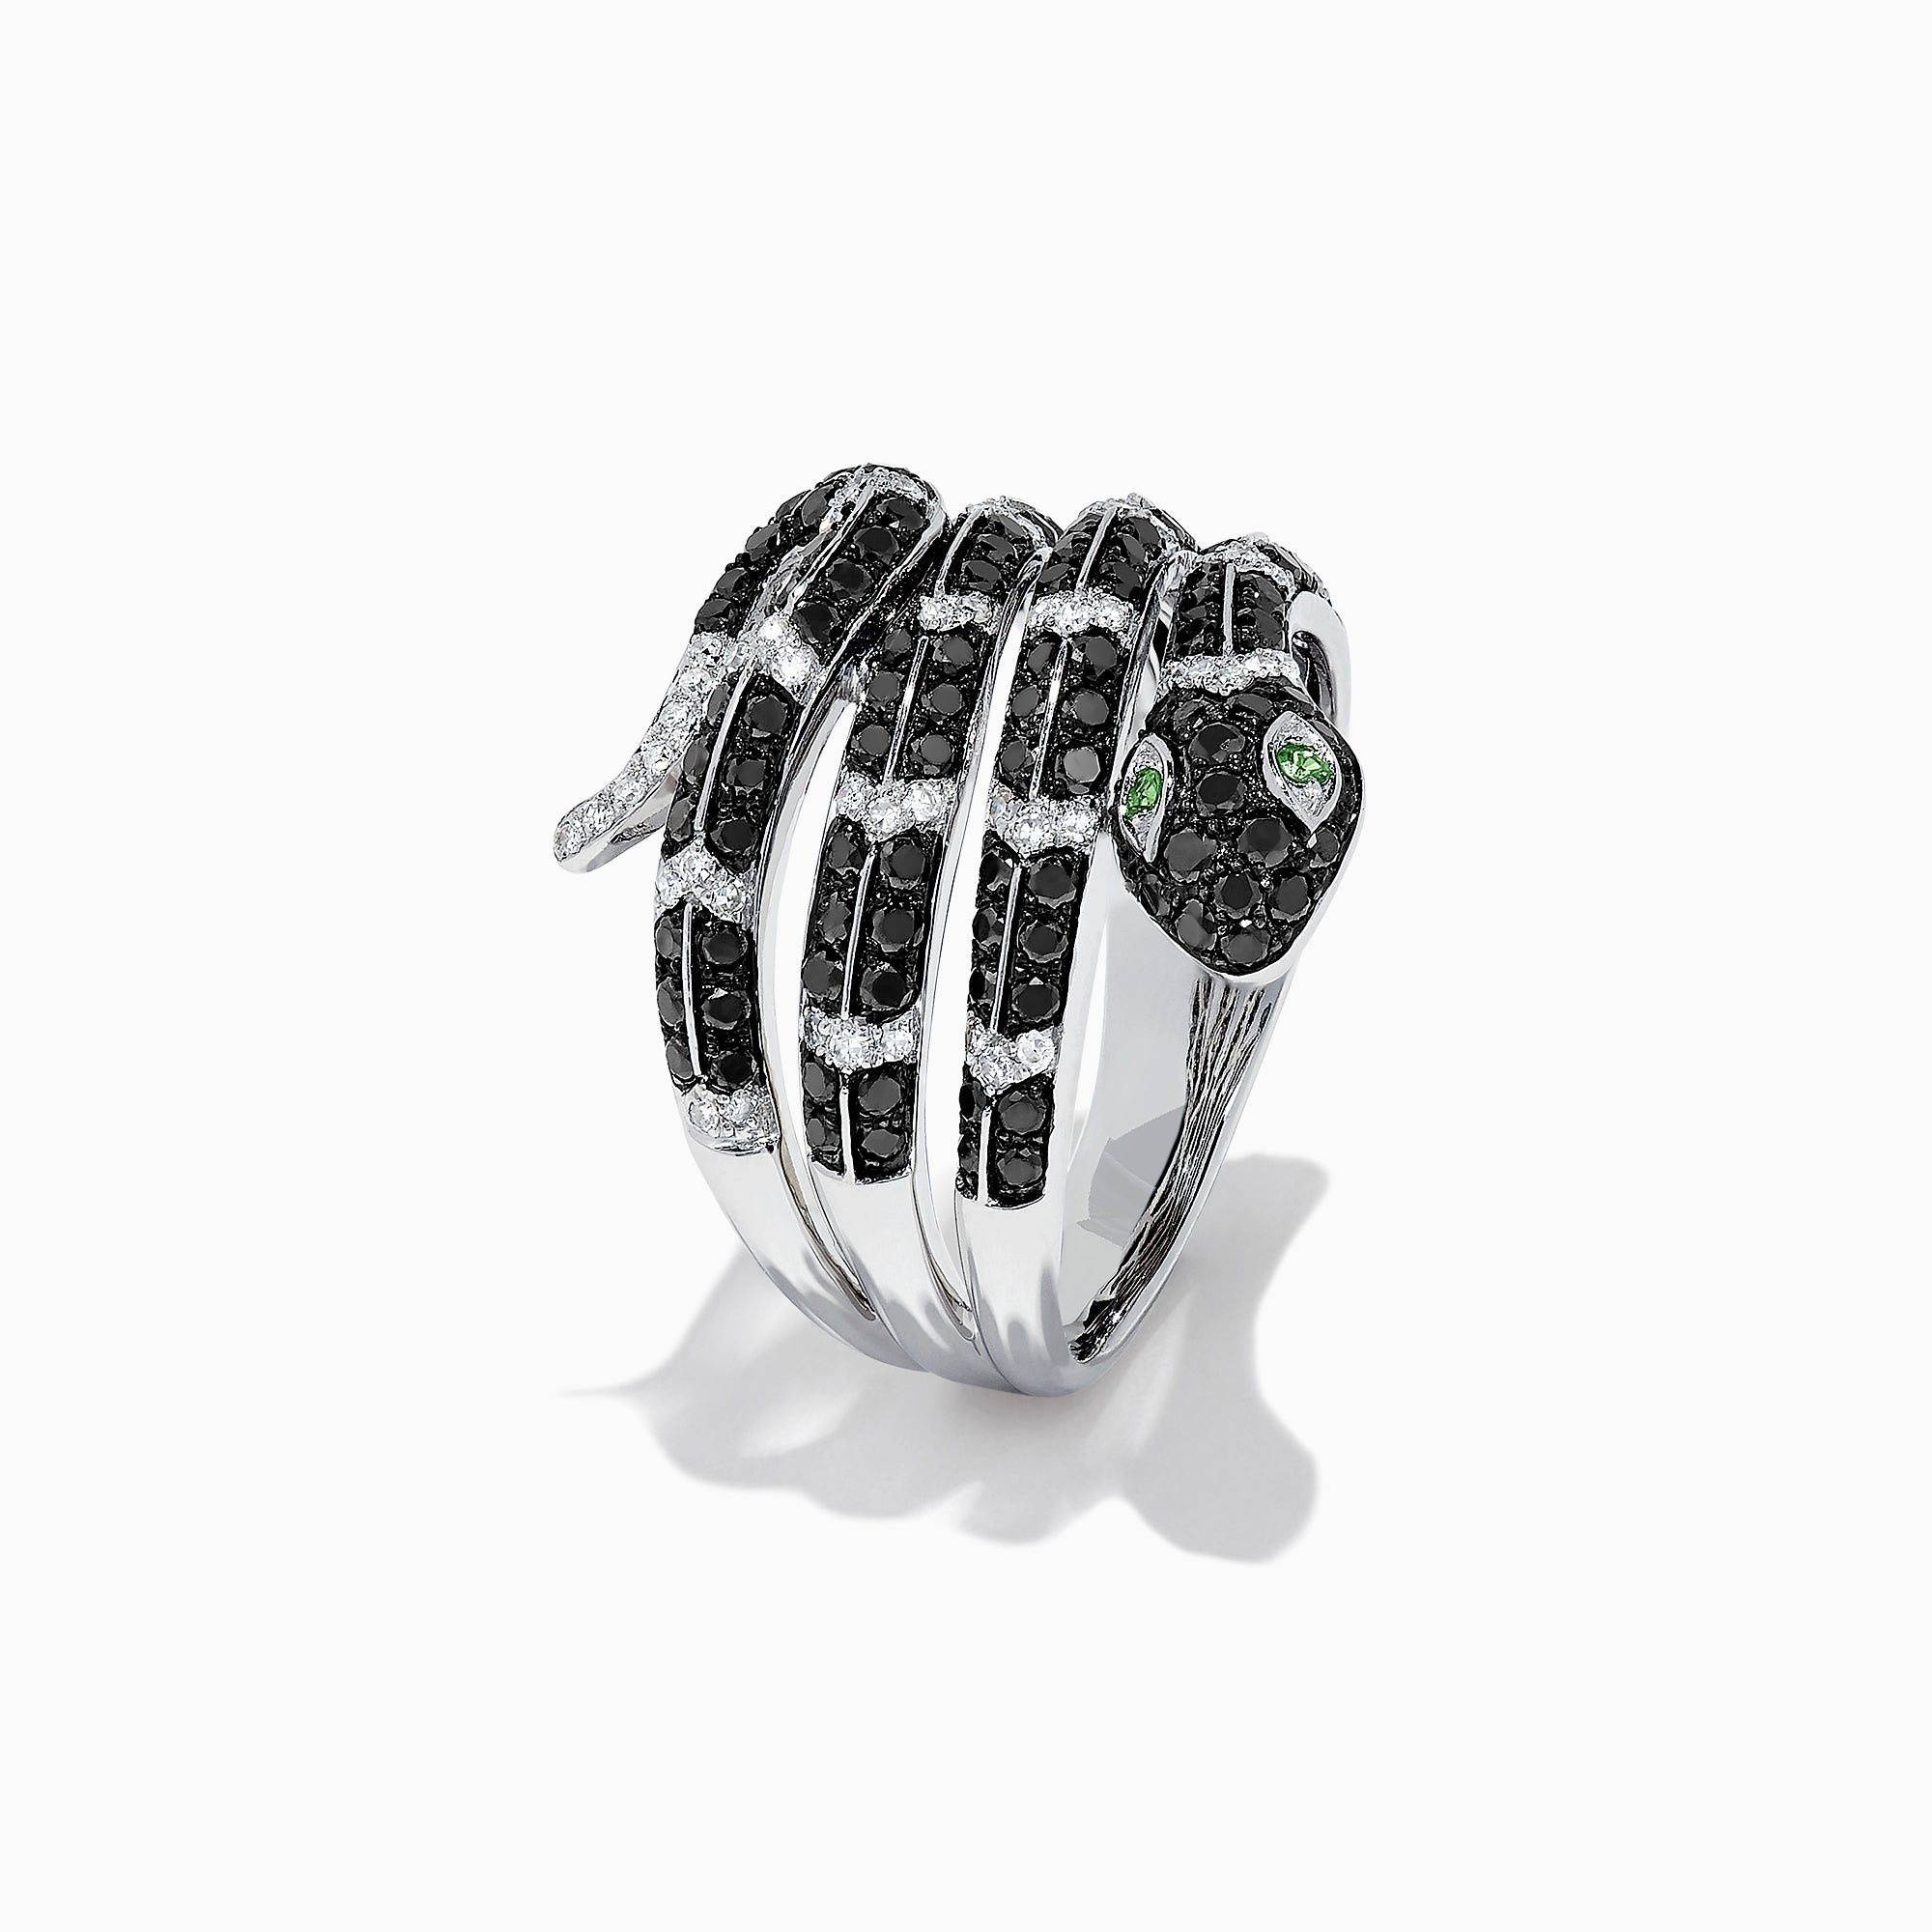 Effy Safari 14K White Gold Diamond & Emerald Snake Ring, 1.06 TCW